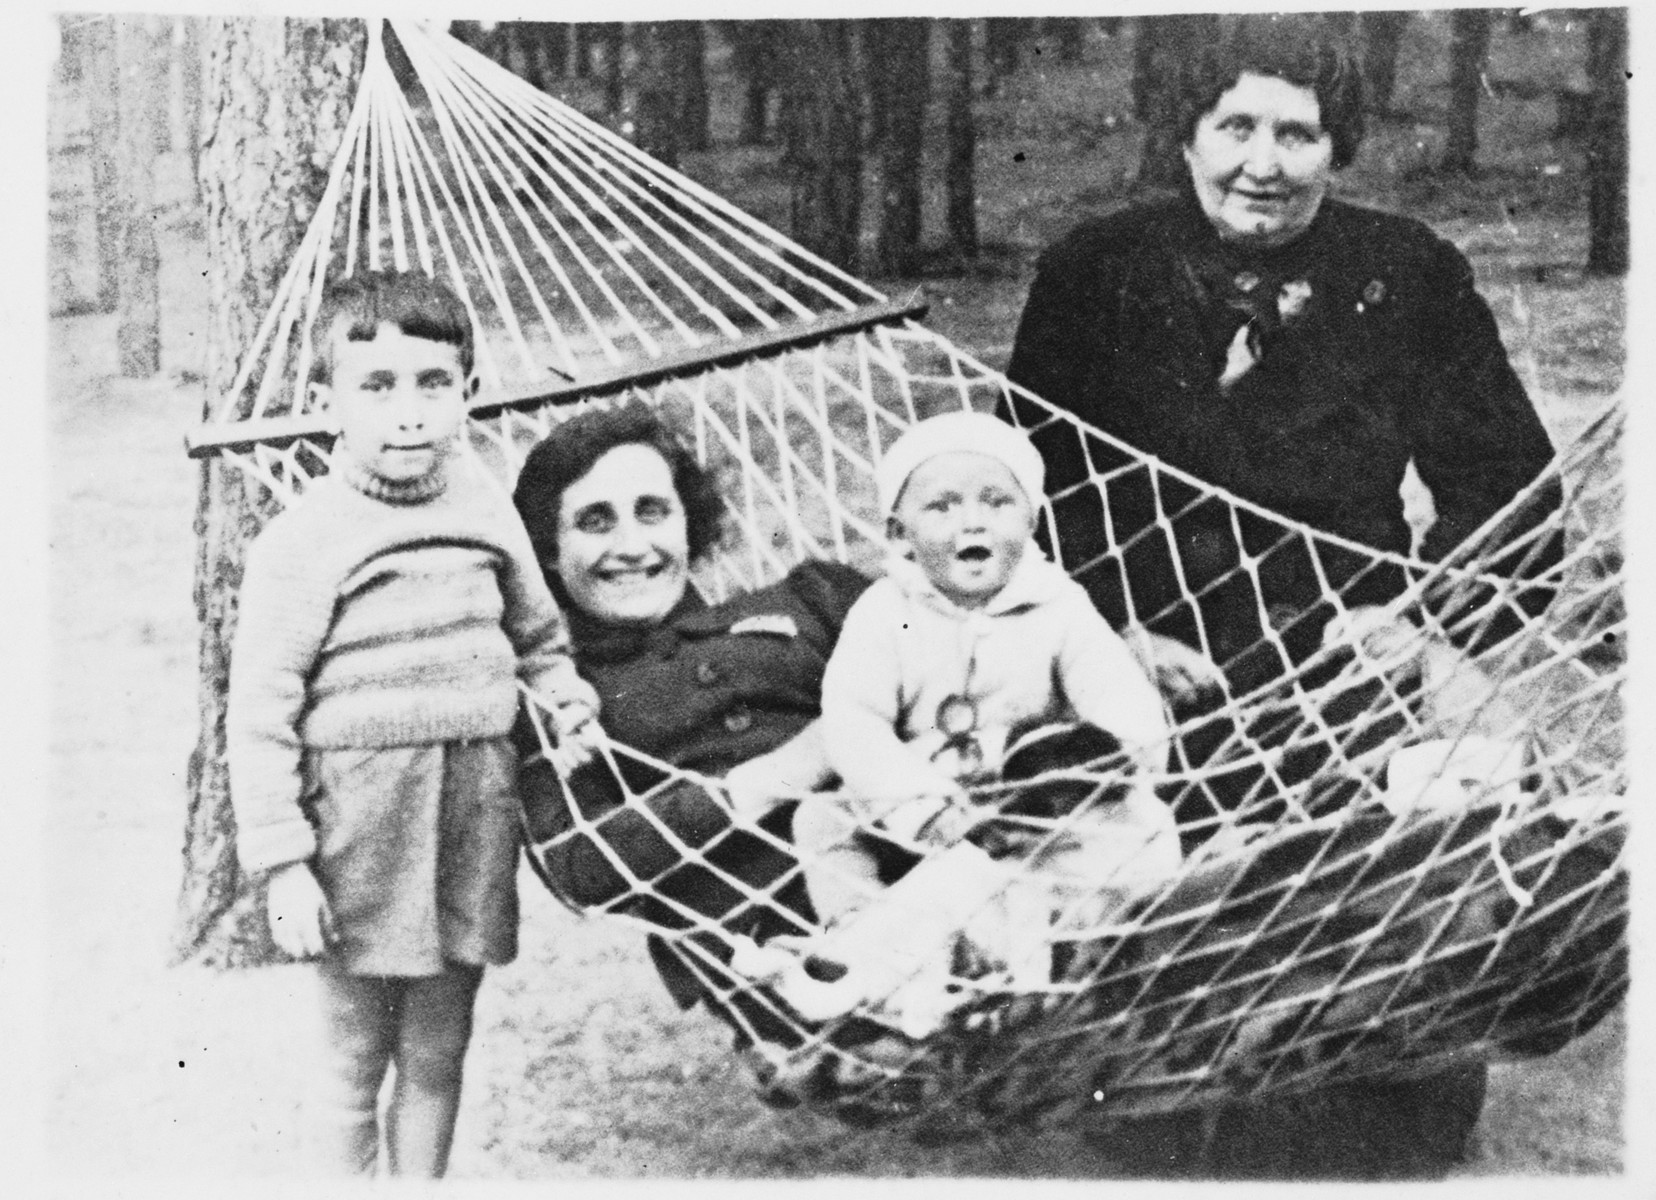 Dvorah Rubin (the donor's grandmother) poses next to a hammock with her daughter and grandchildren.